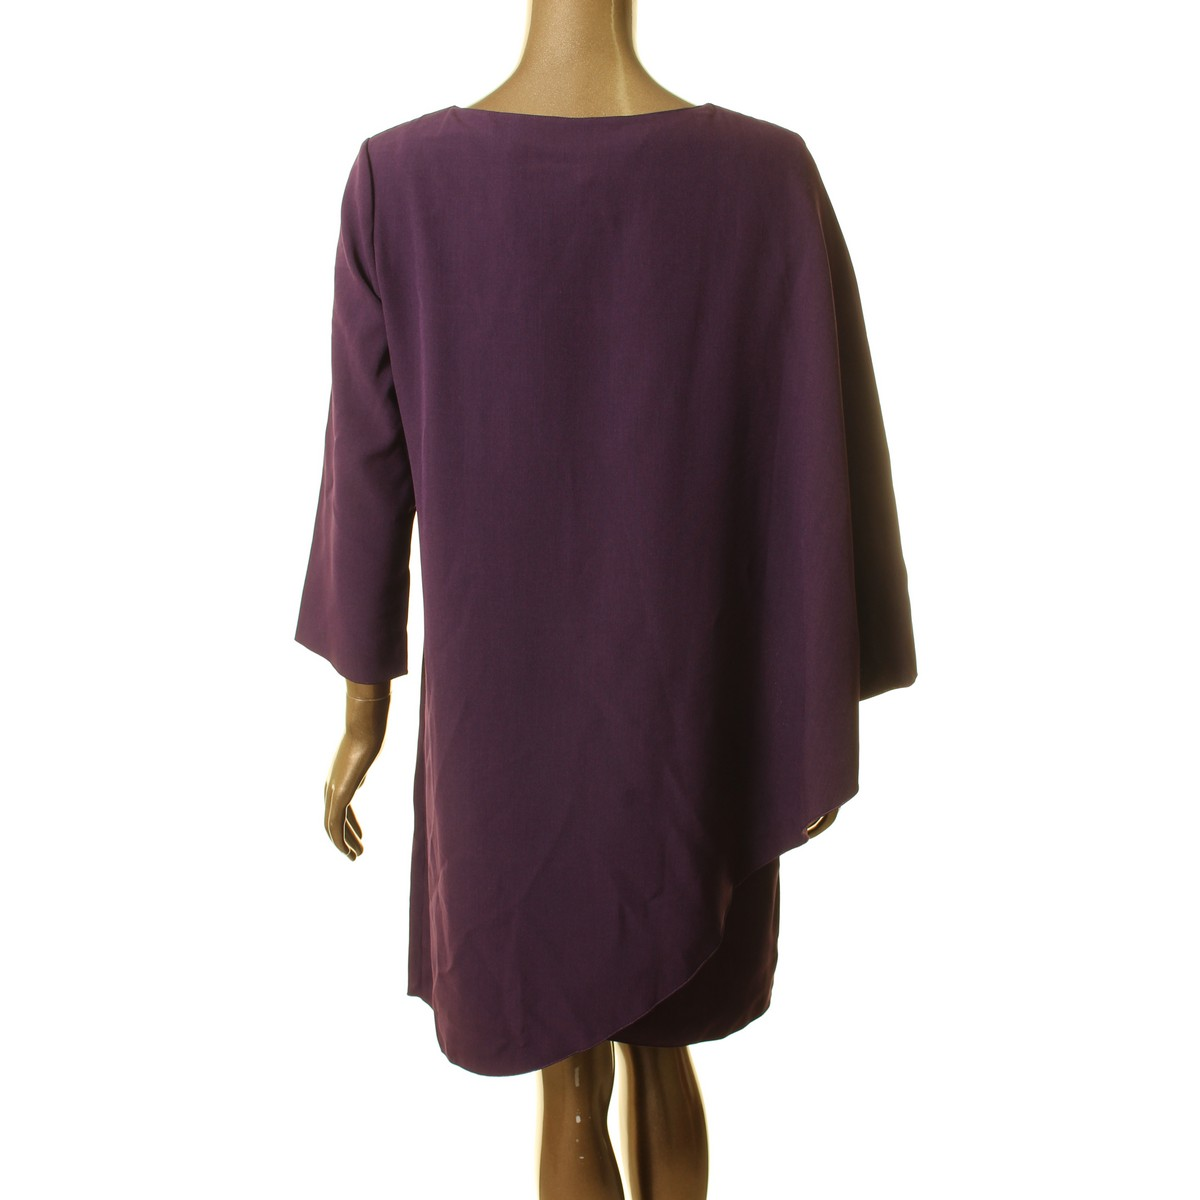 ANNE-KLEIN-NEW-Women-039-s-Cape-Crepe-Split-Sleeve-Shift-Dress-TEDO thumbnail 8